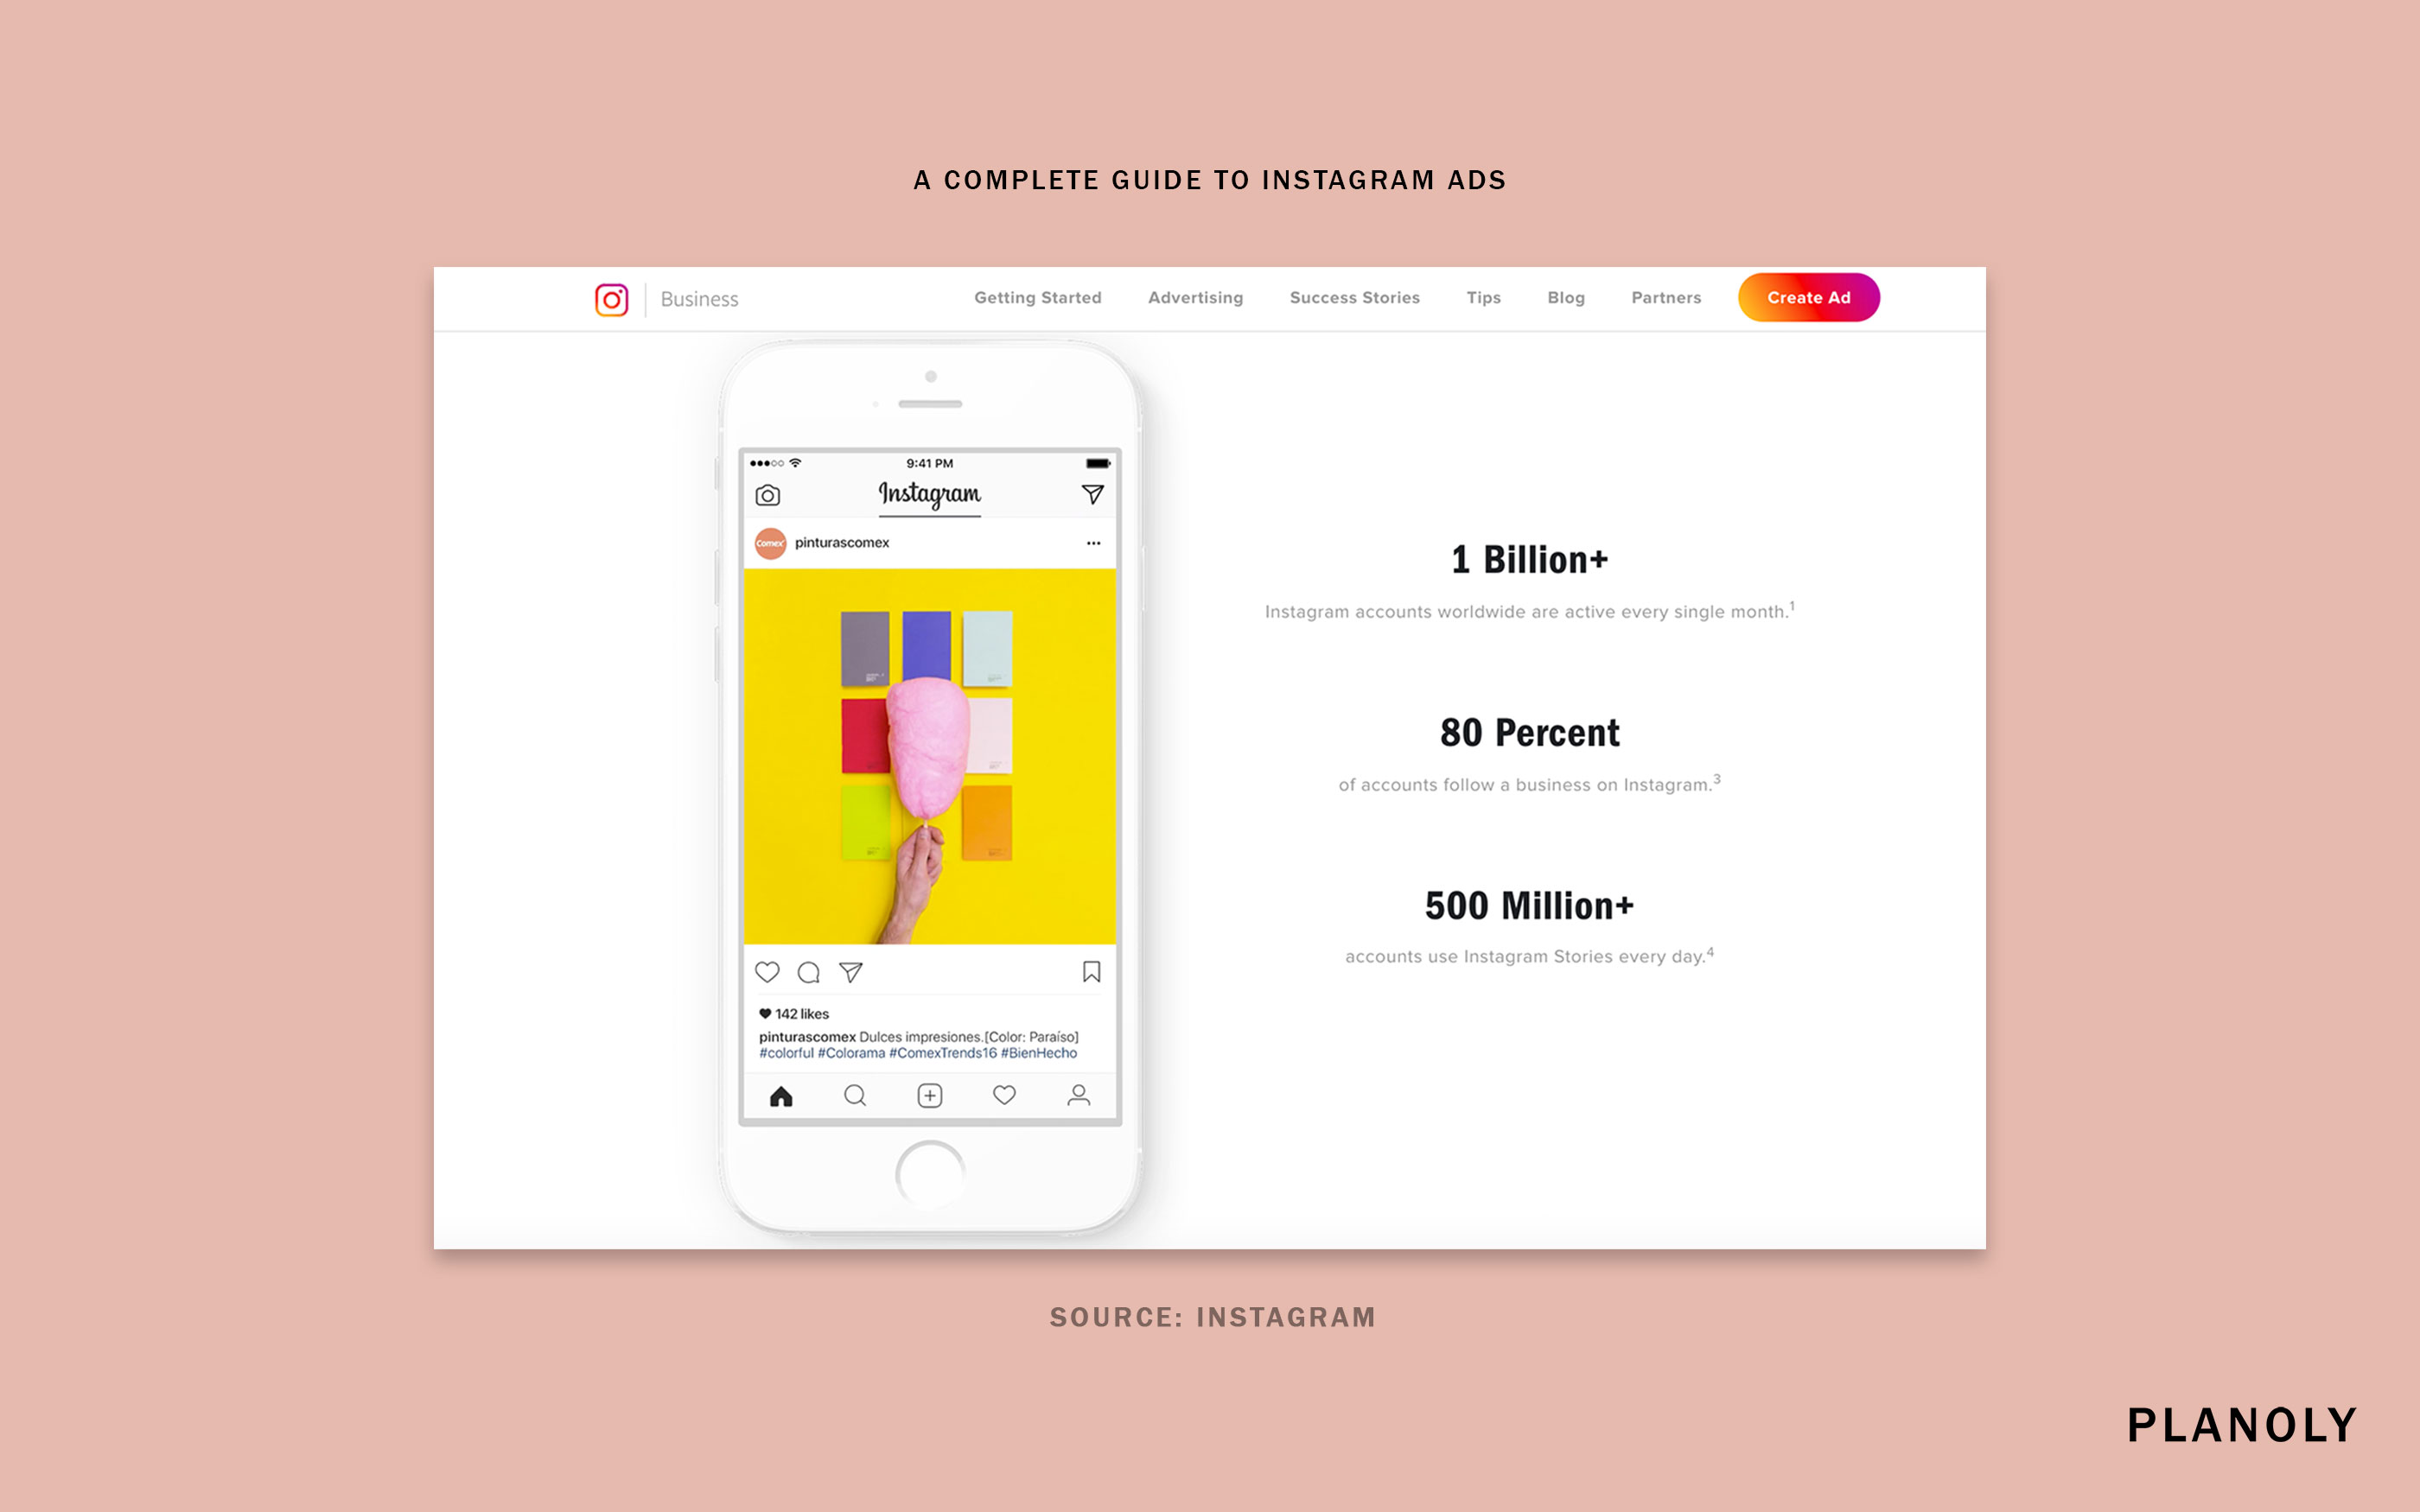 A Complete Guide to Instagram Ads